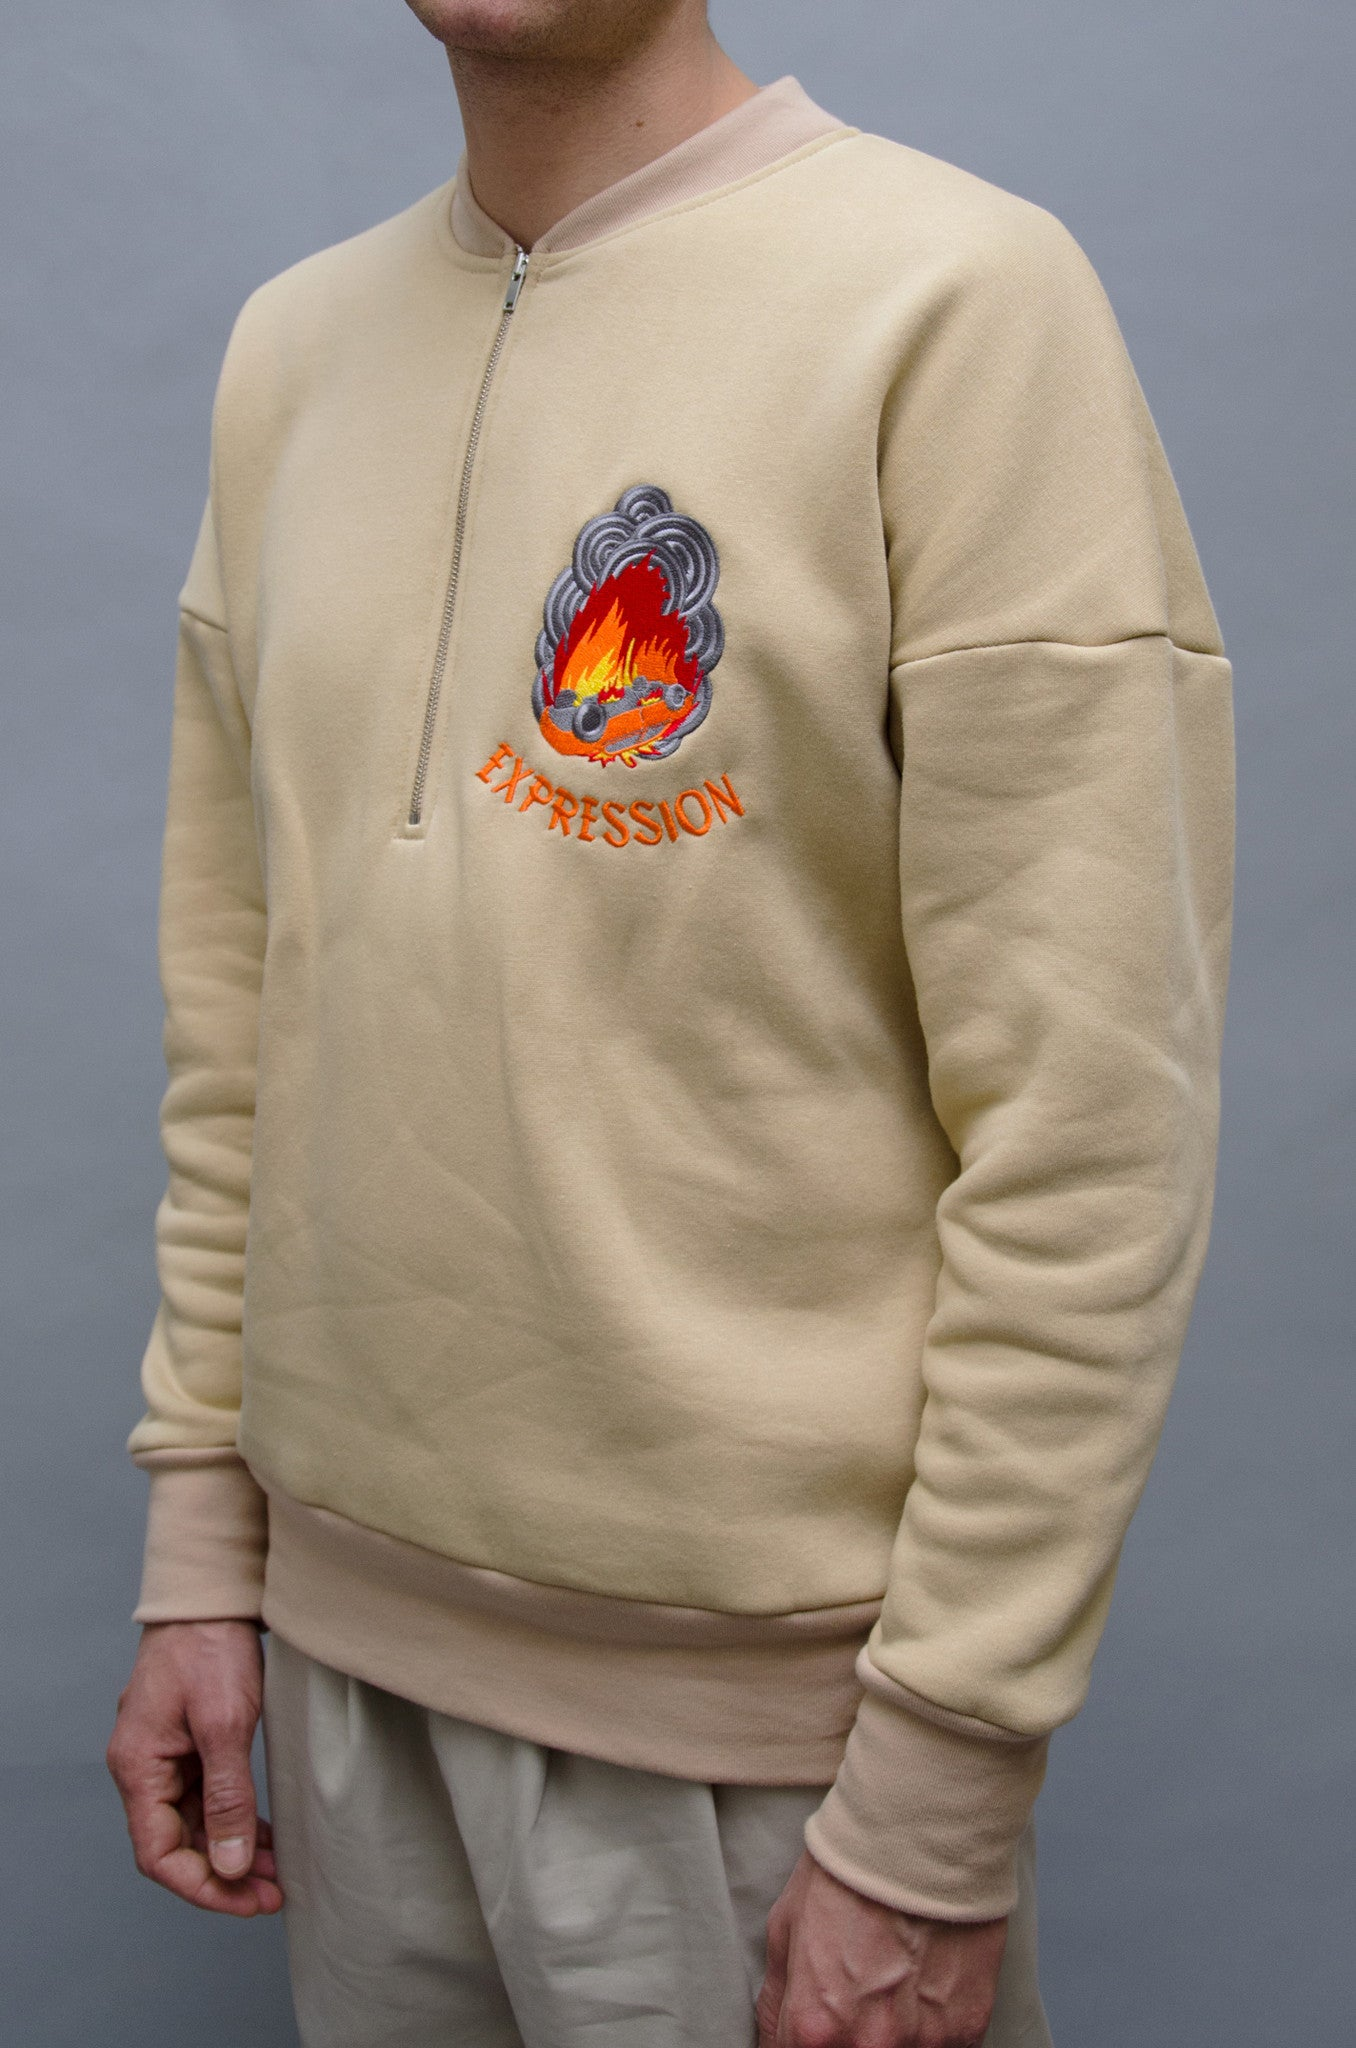 The North Hill Burn-A-Car Zipped Crewneck is a made in France zipped sweatshirt